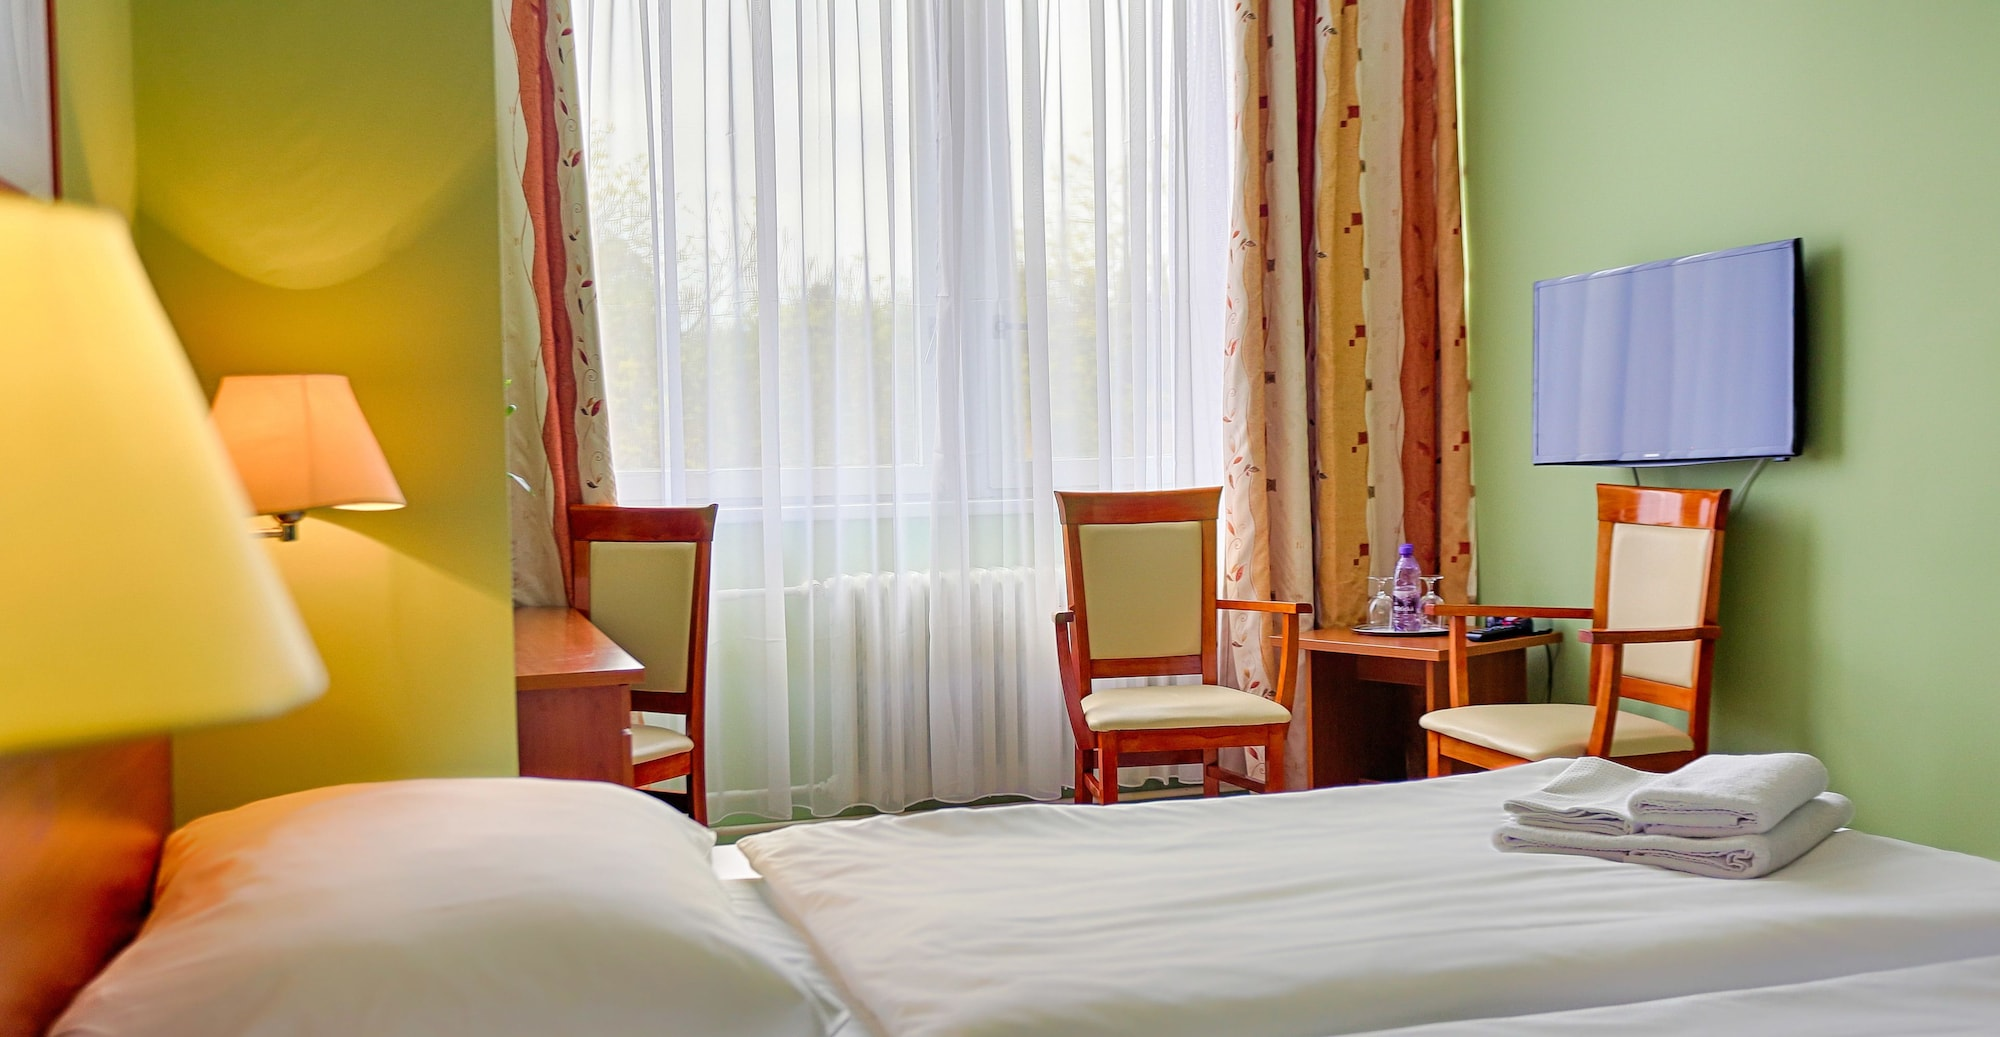 Spa Hotel Vietoris, Senica